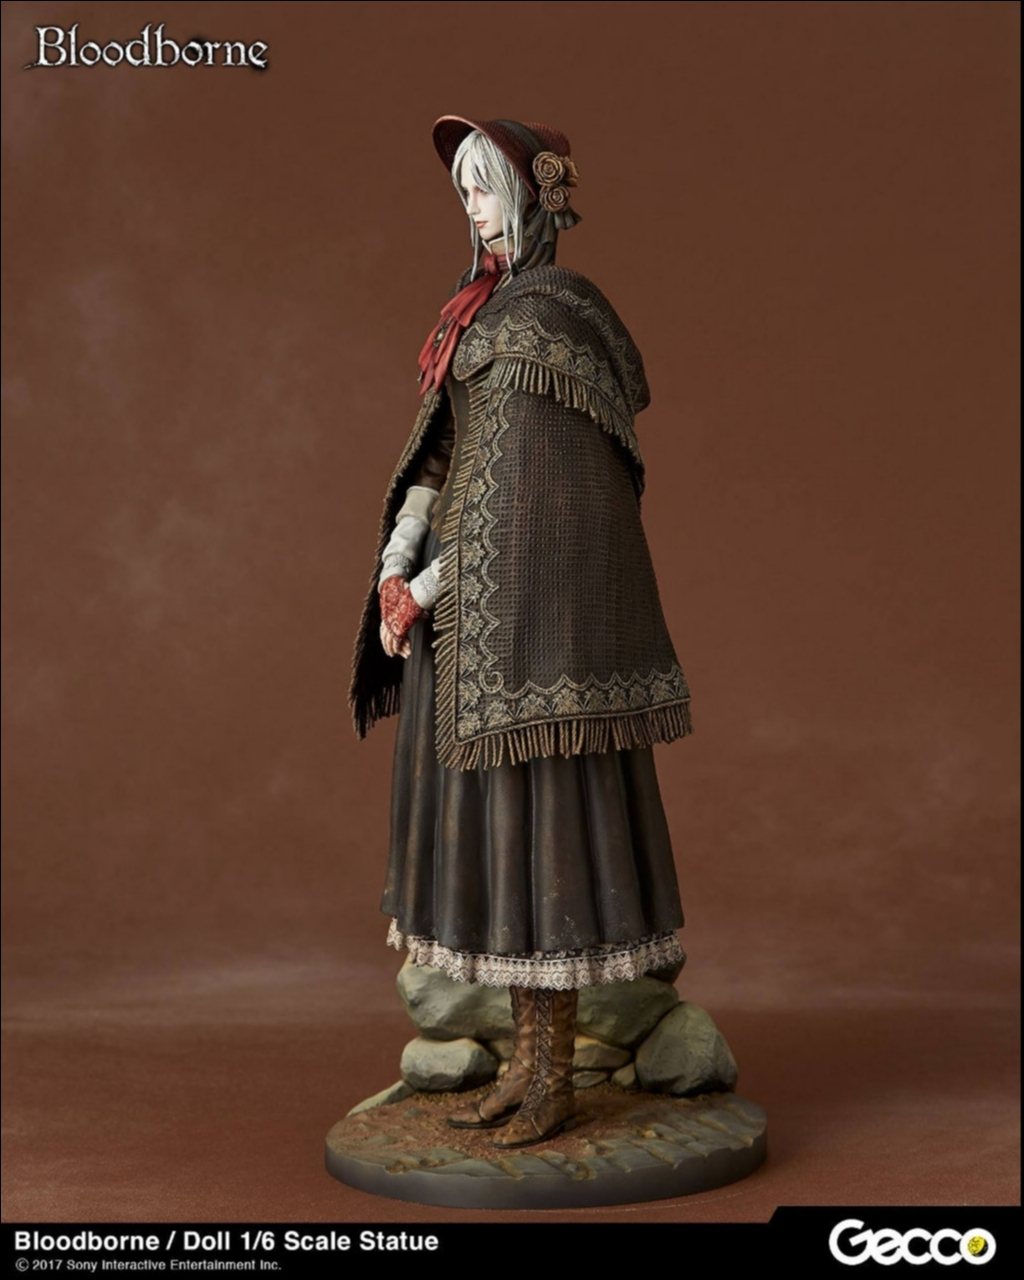 bloodborne-Doll-figure-statue-new-preorder-7-14-1499370764-45-1499371351.jpg